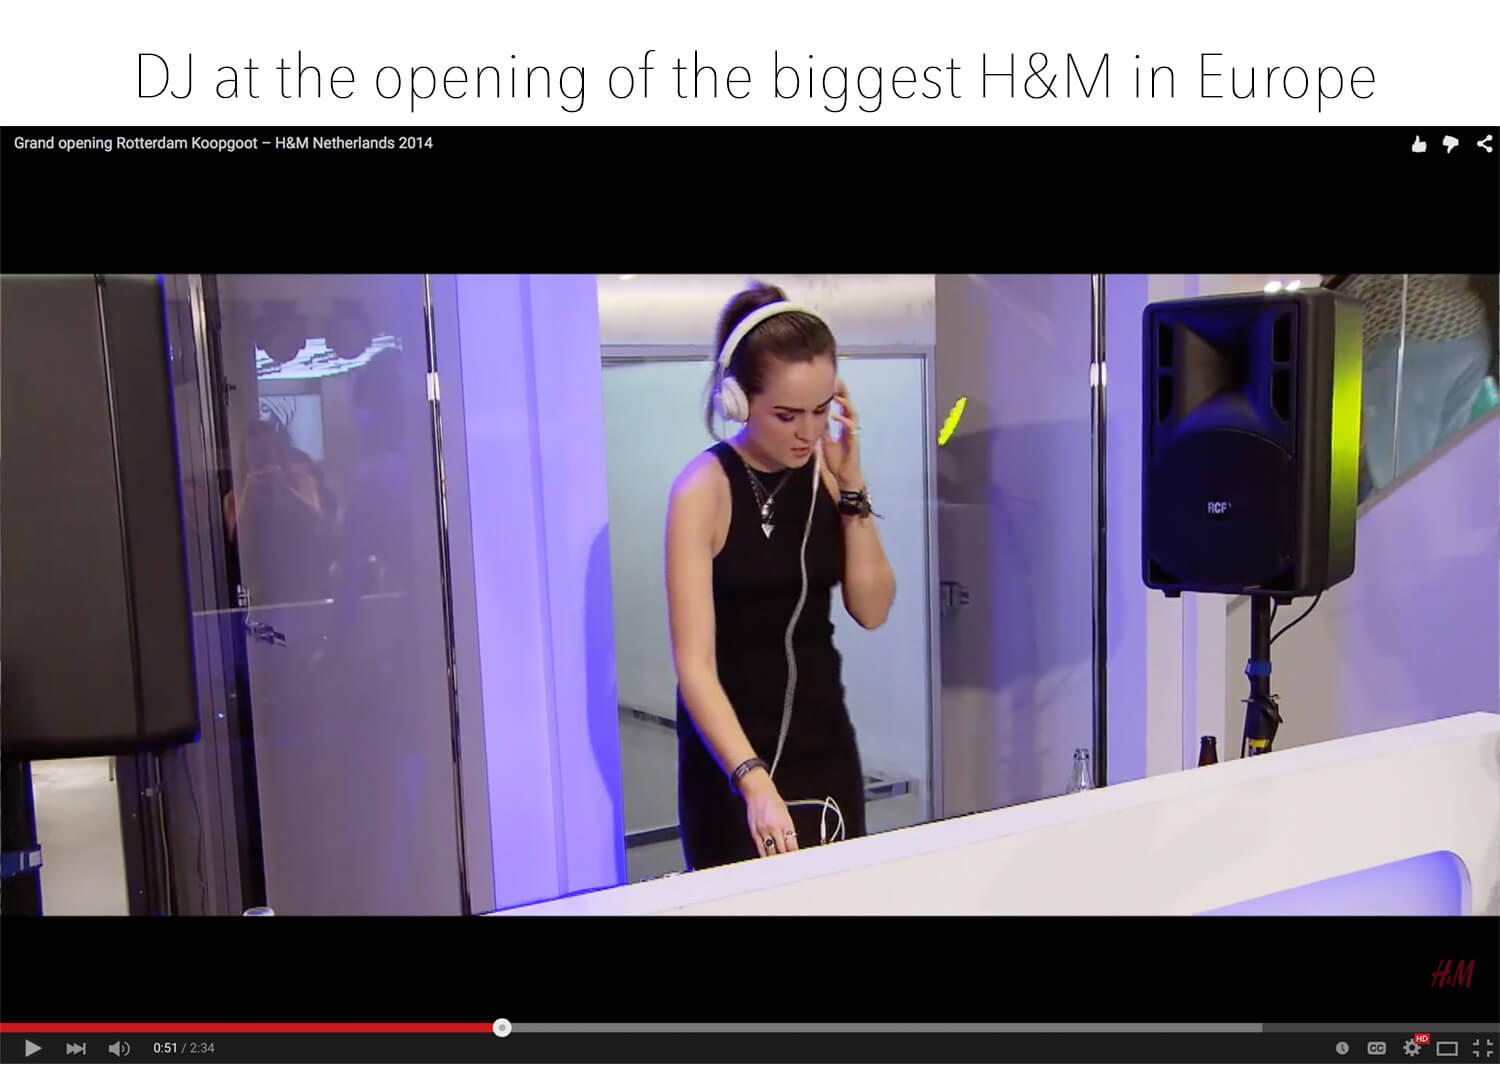 Andy Torres DJ at the biggest H&M opening in Rotterdam